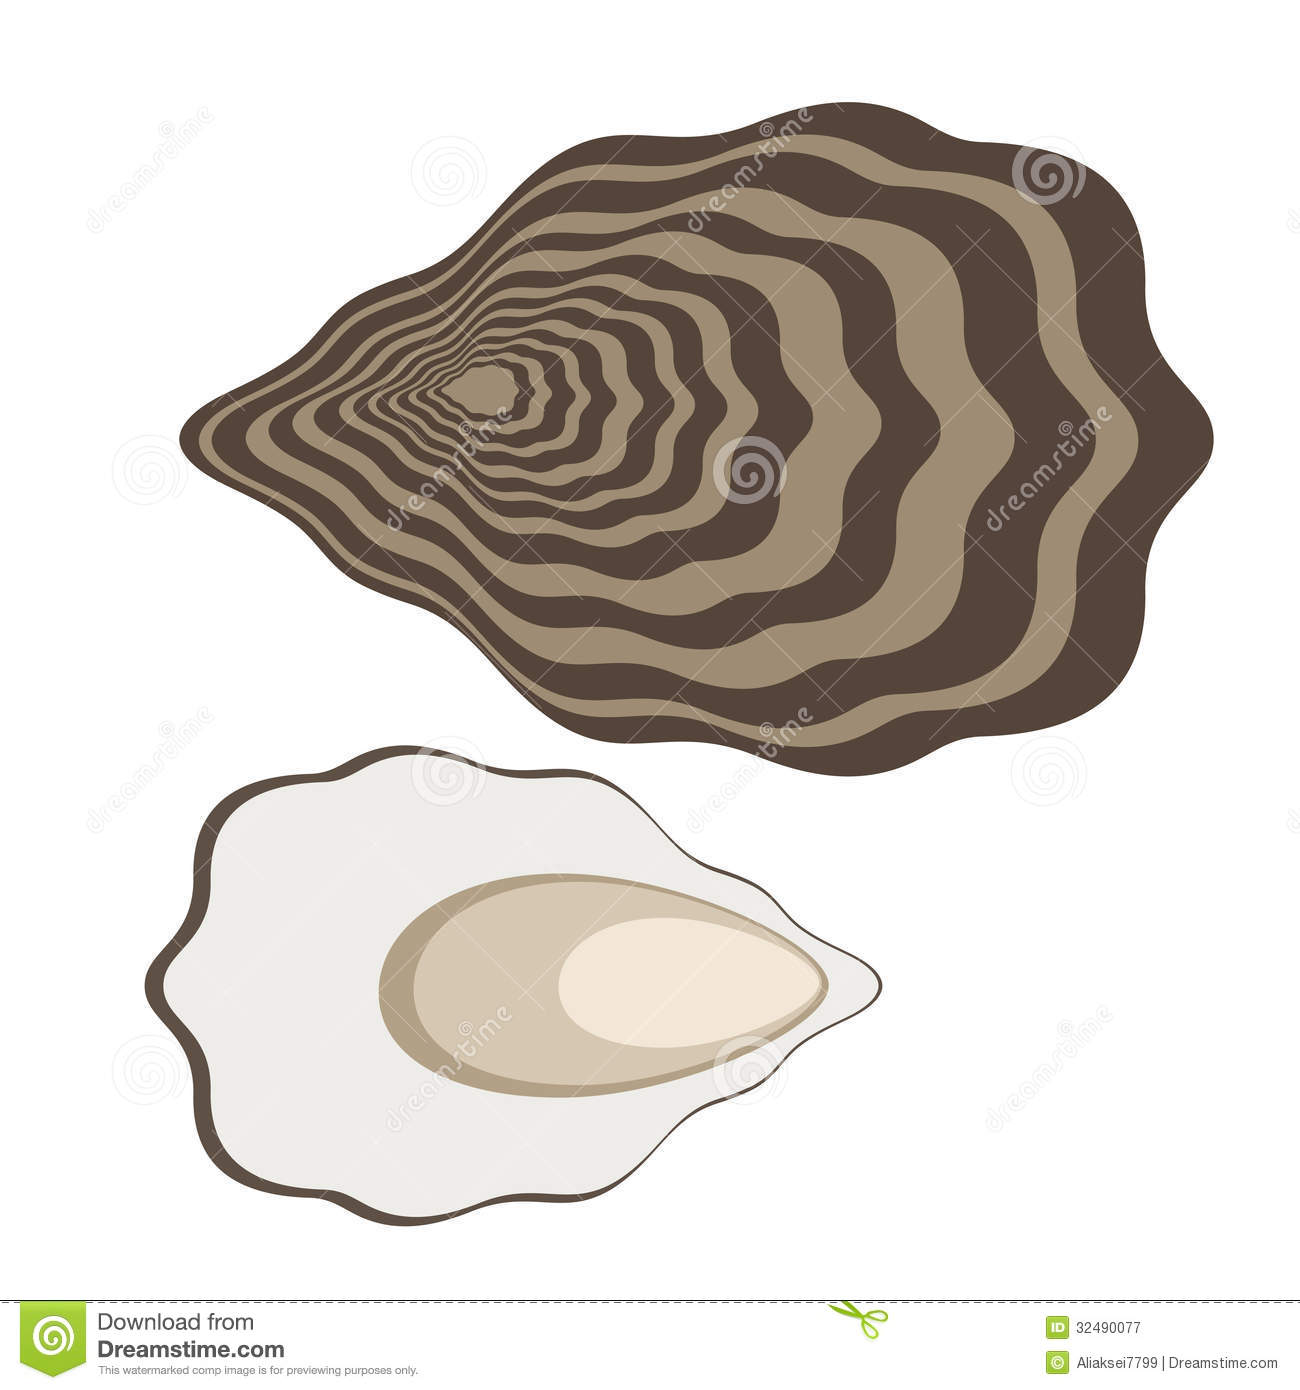 Oyster. Isolated objects on white background. Vector illustration (EPS ... Open Oyster Shell With Pearl